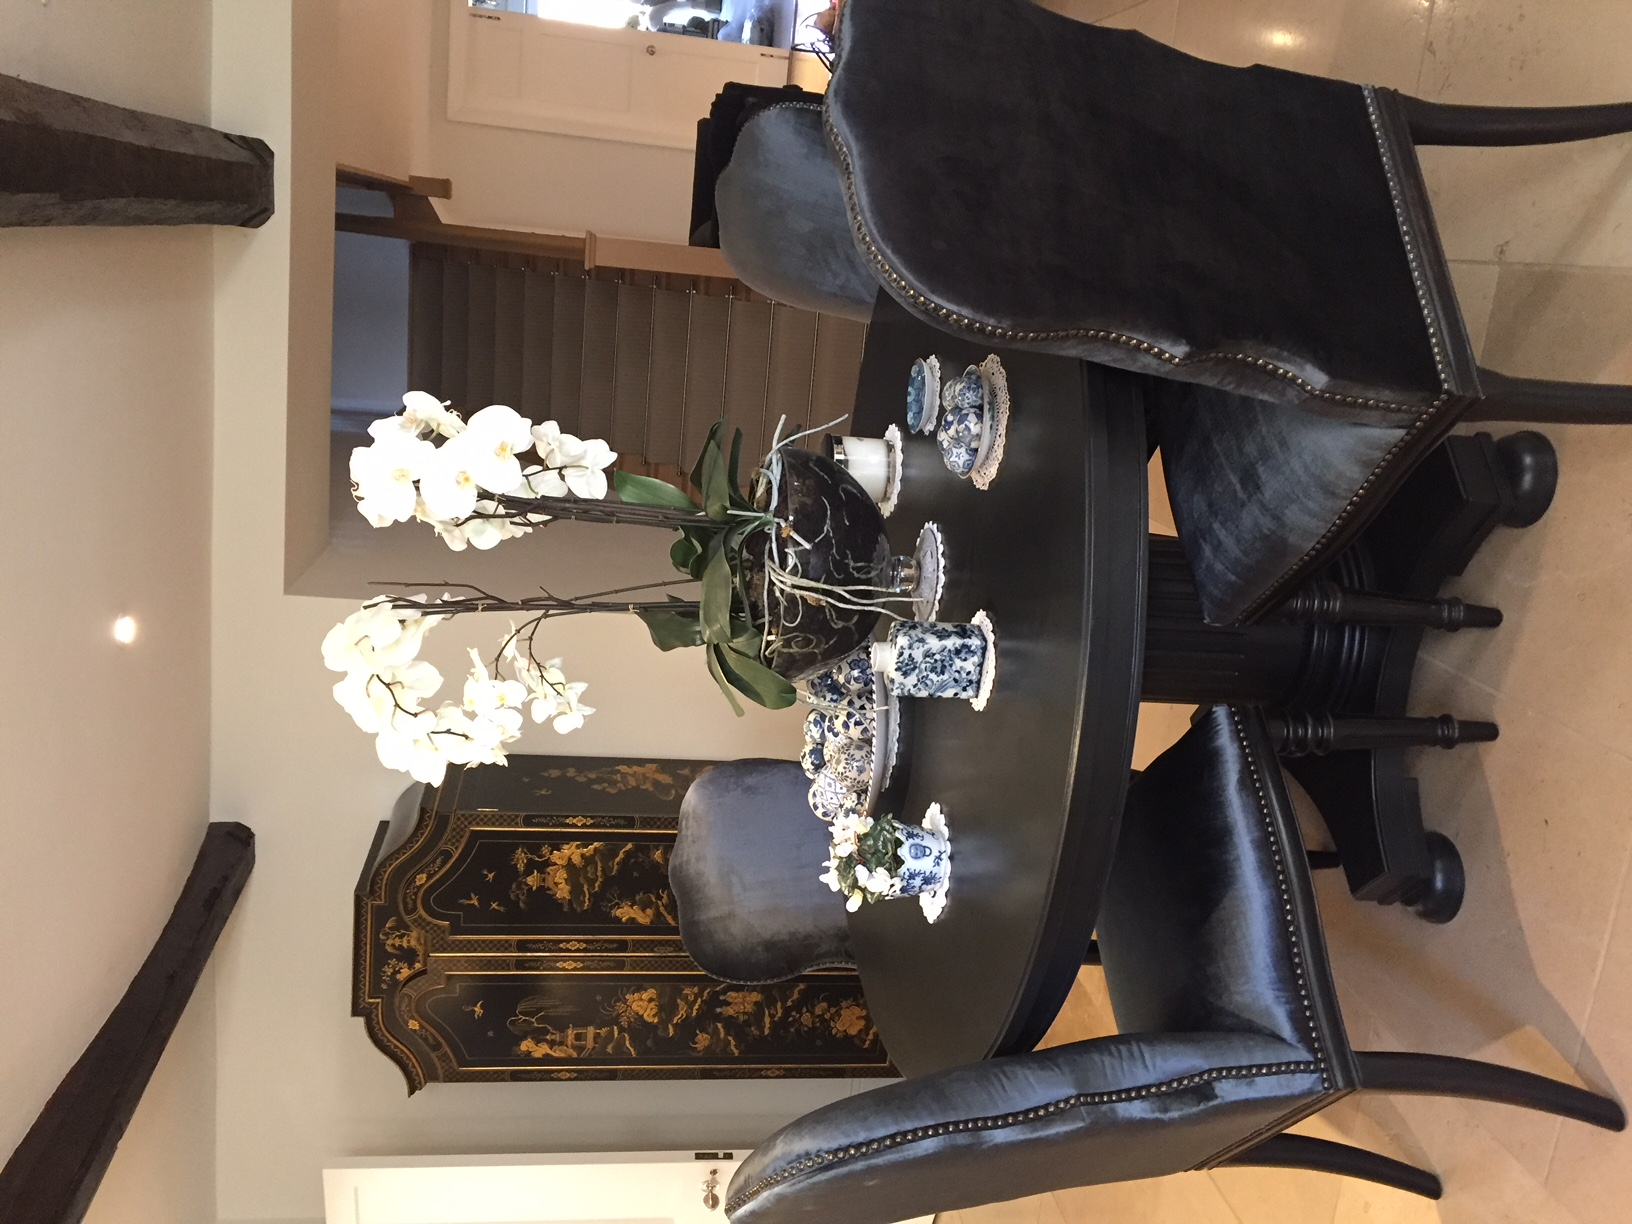 black dining room table and upholstered chairs featured decorative Chinoiserie cabinet